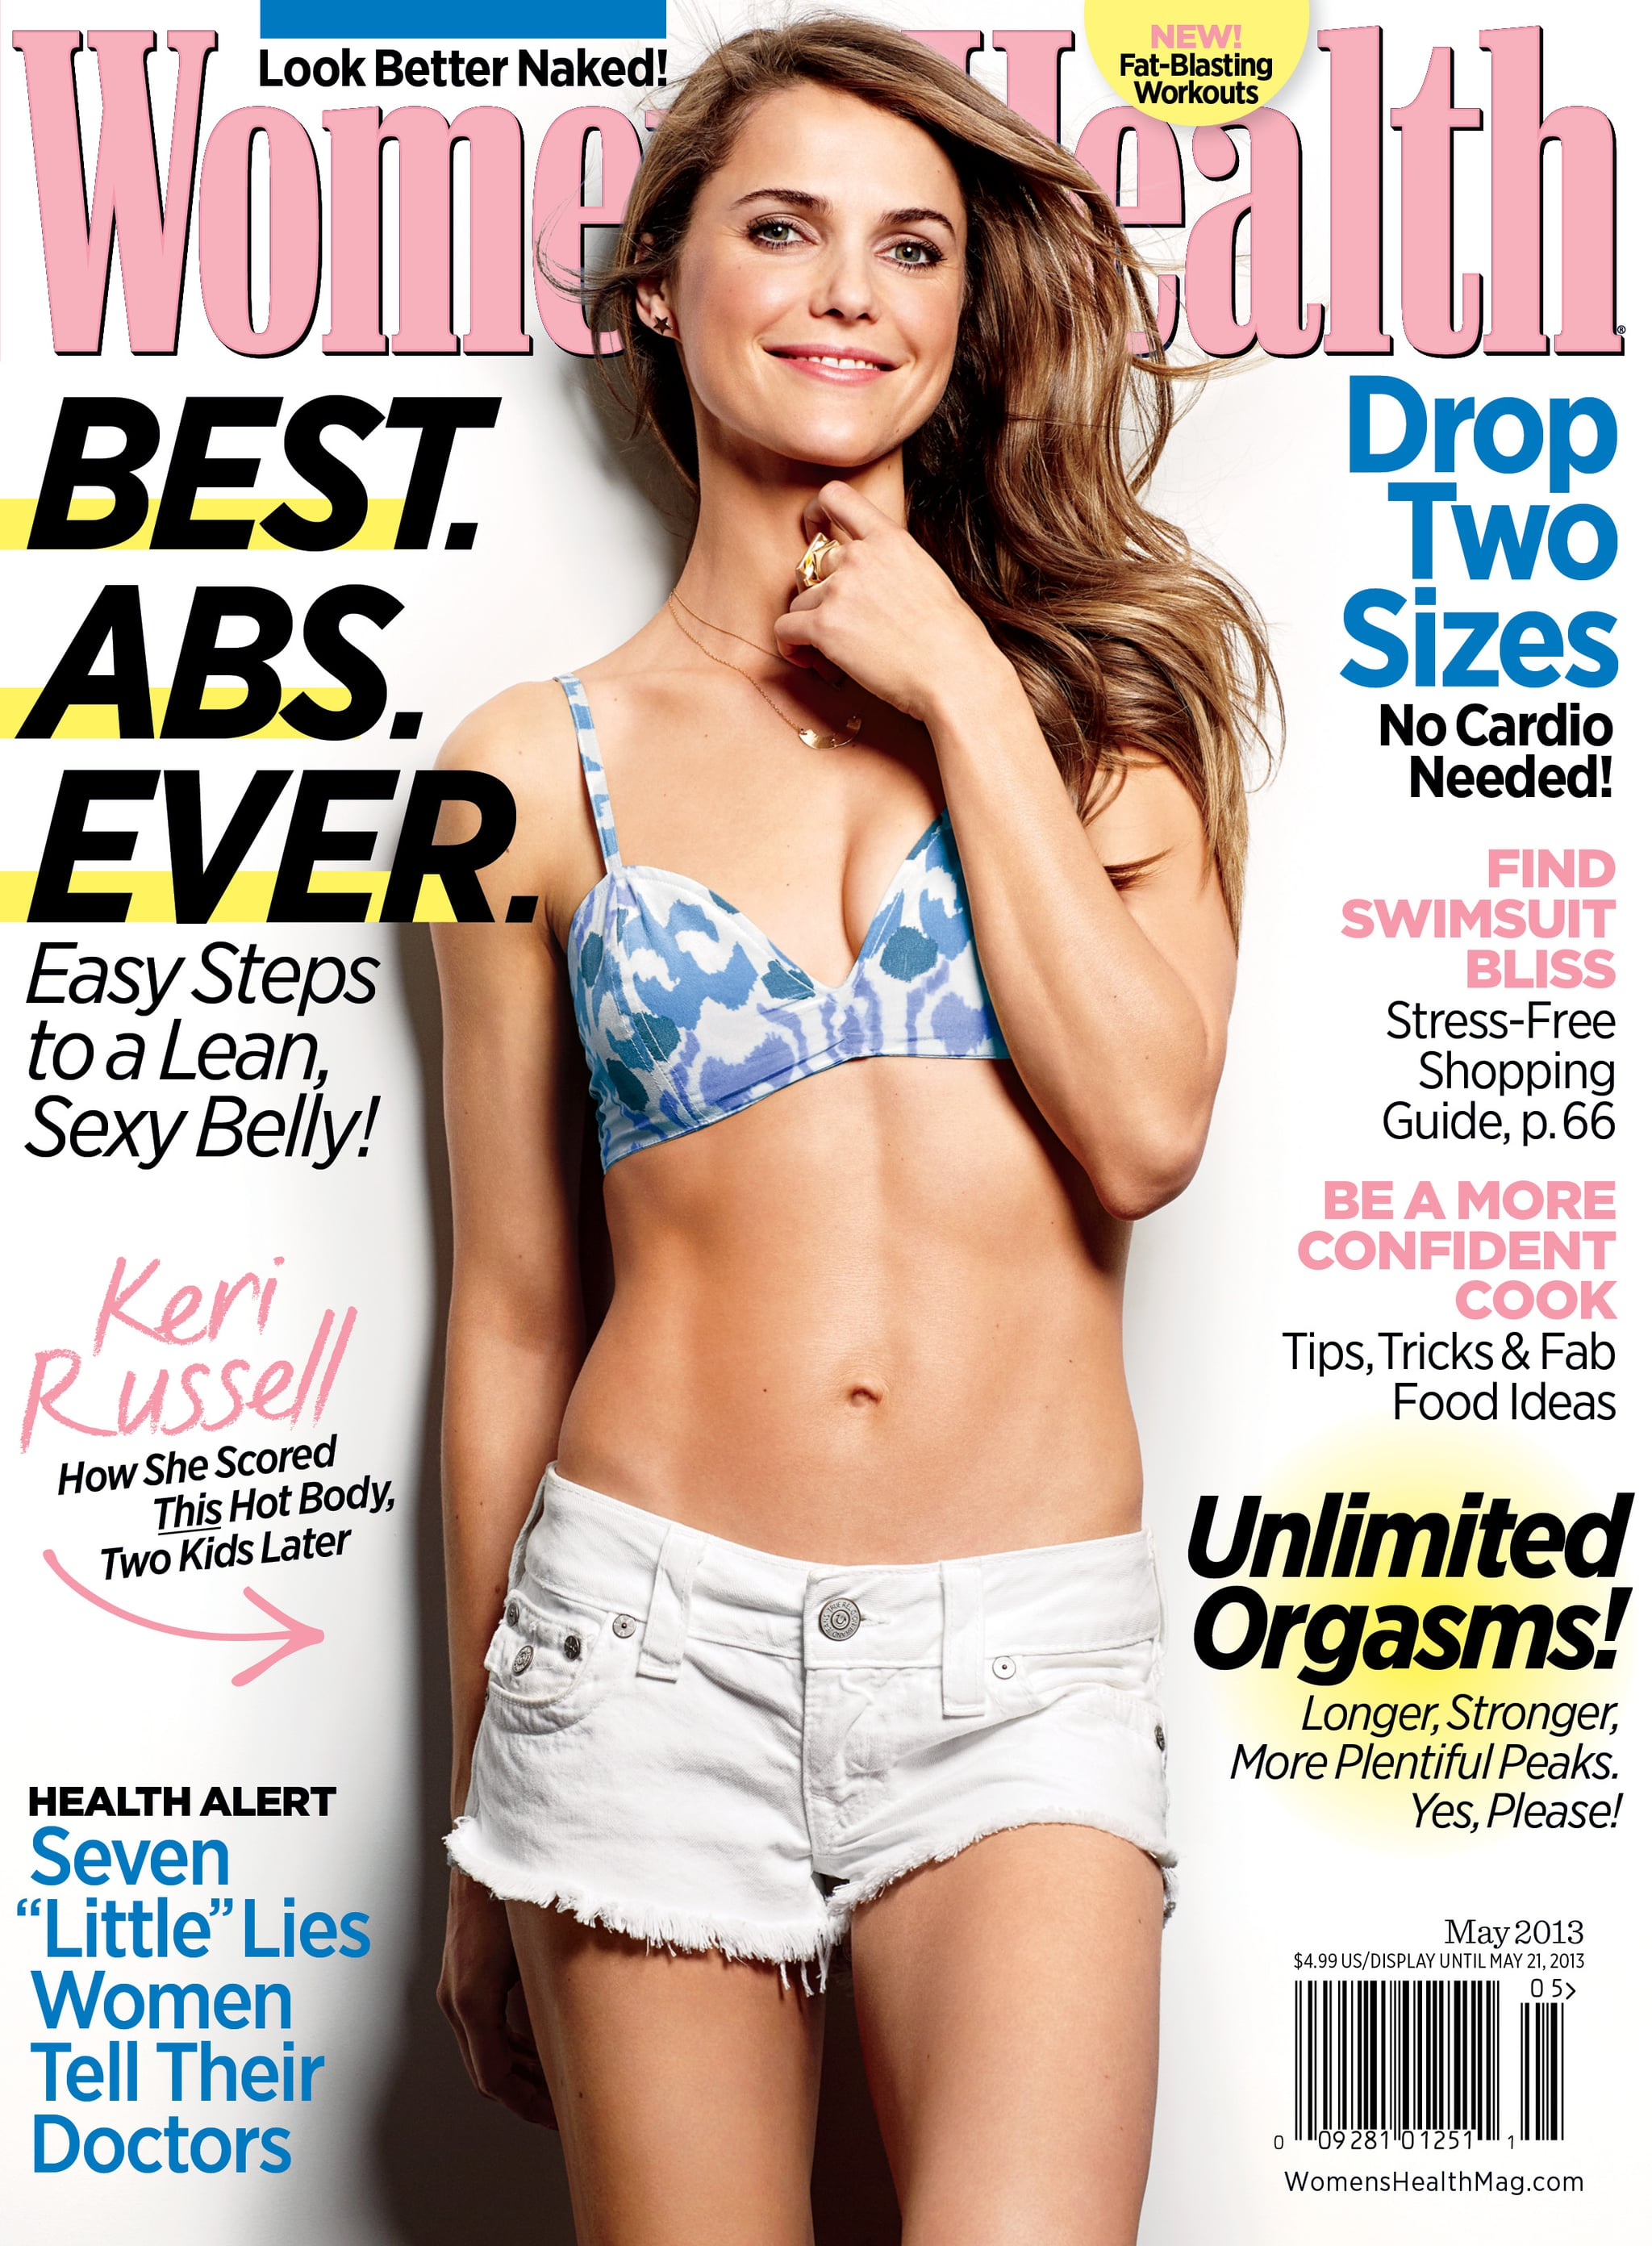 Keri Russell on the cover of the May 2013 Women's Health.